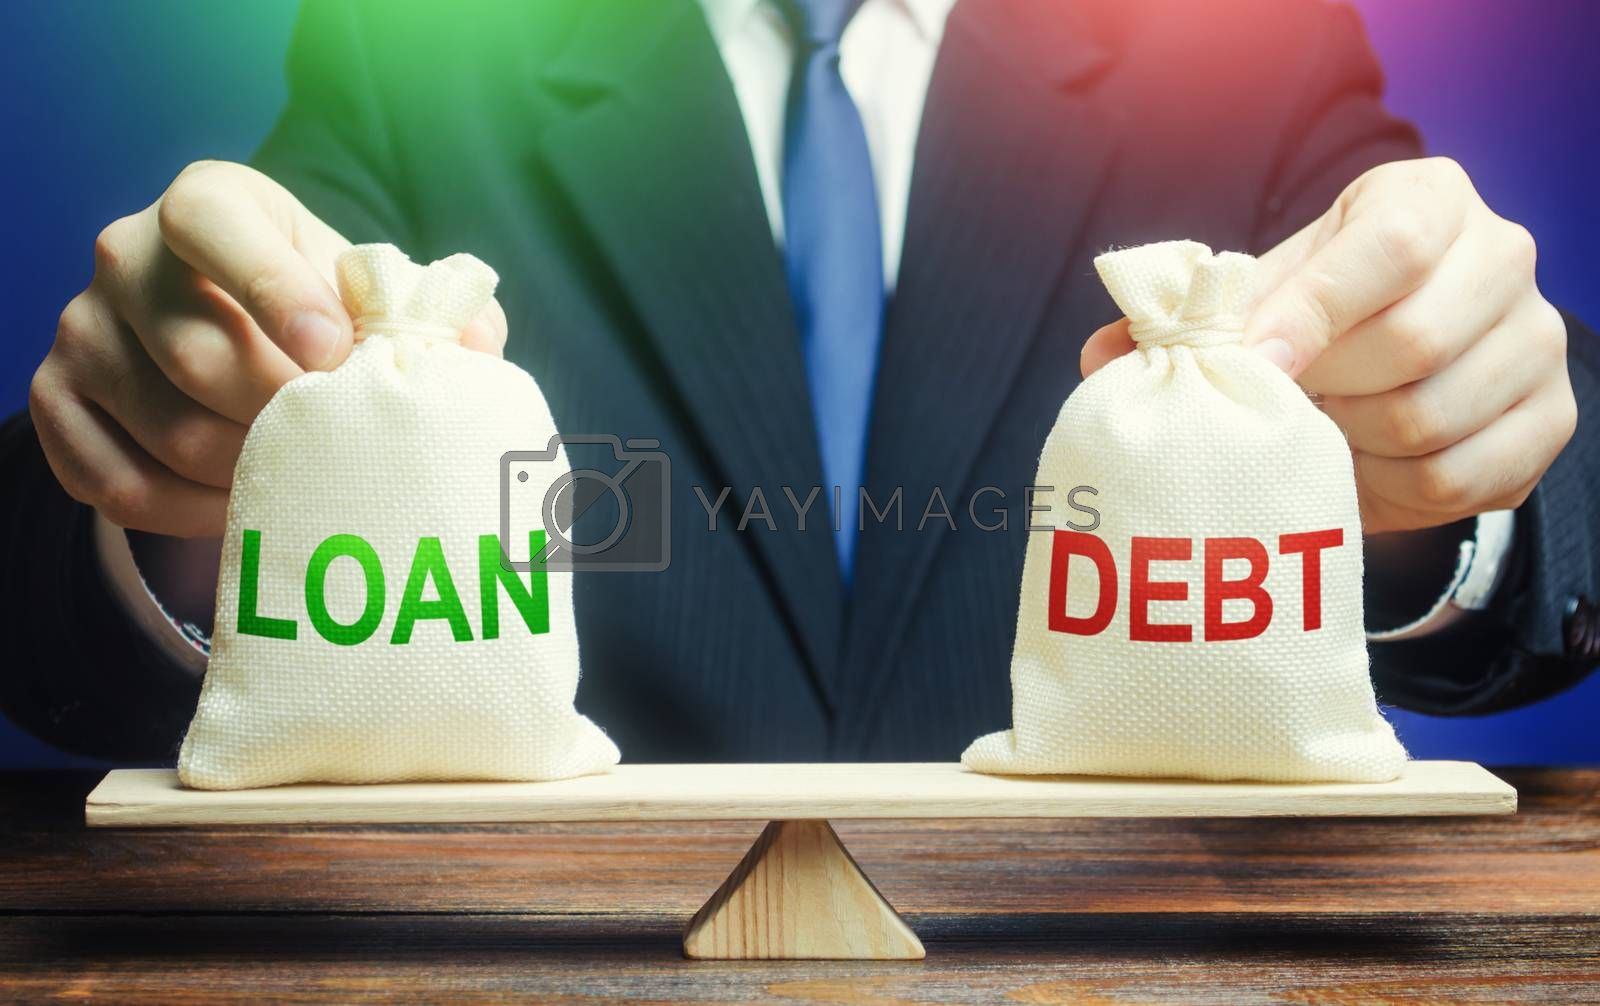 A businessman holds bags with a loan and debt on scales. Financial system balance difficulties. Borrow loans to pay off debts load, debt restructuring. Avoiding default bankruptcy, business support.